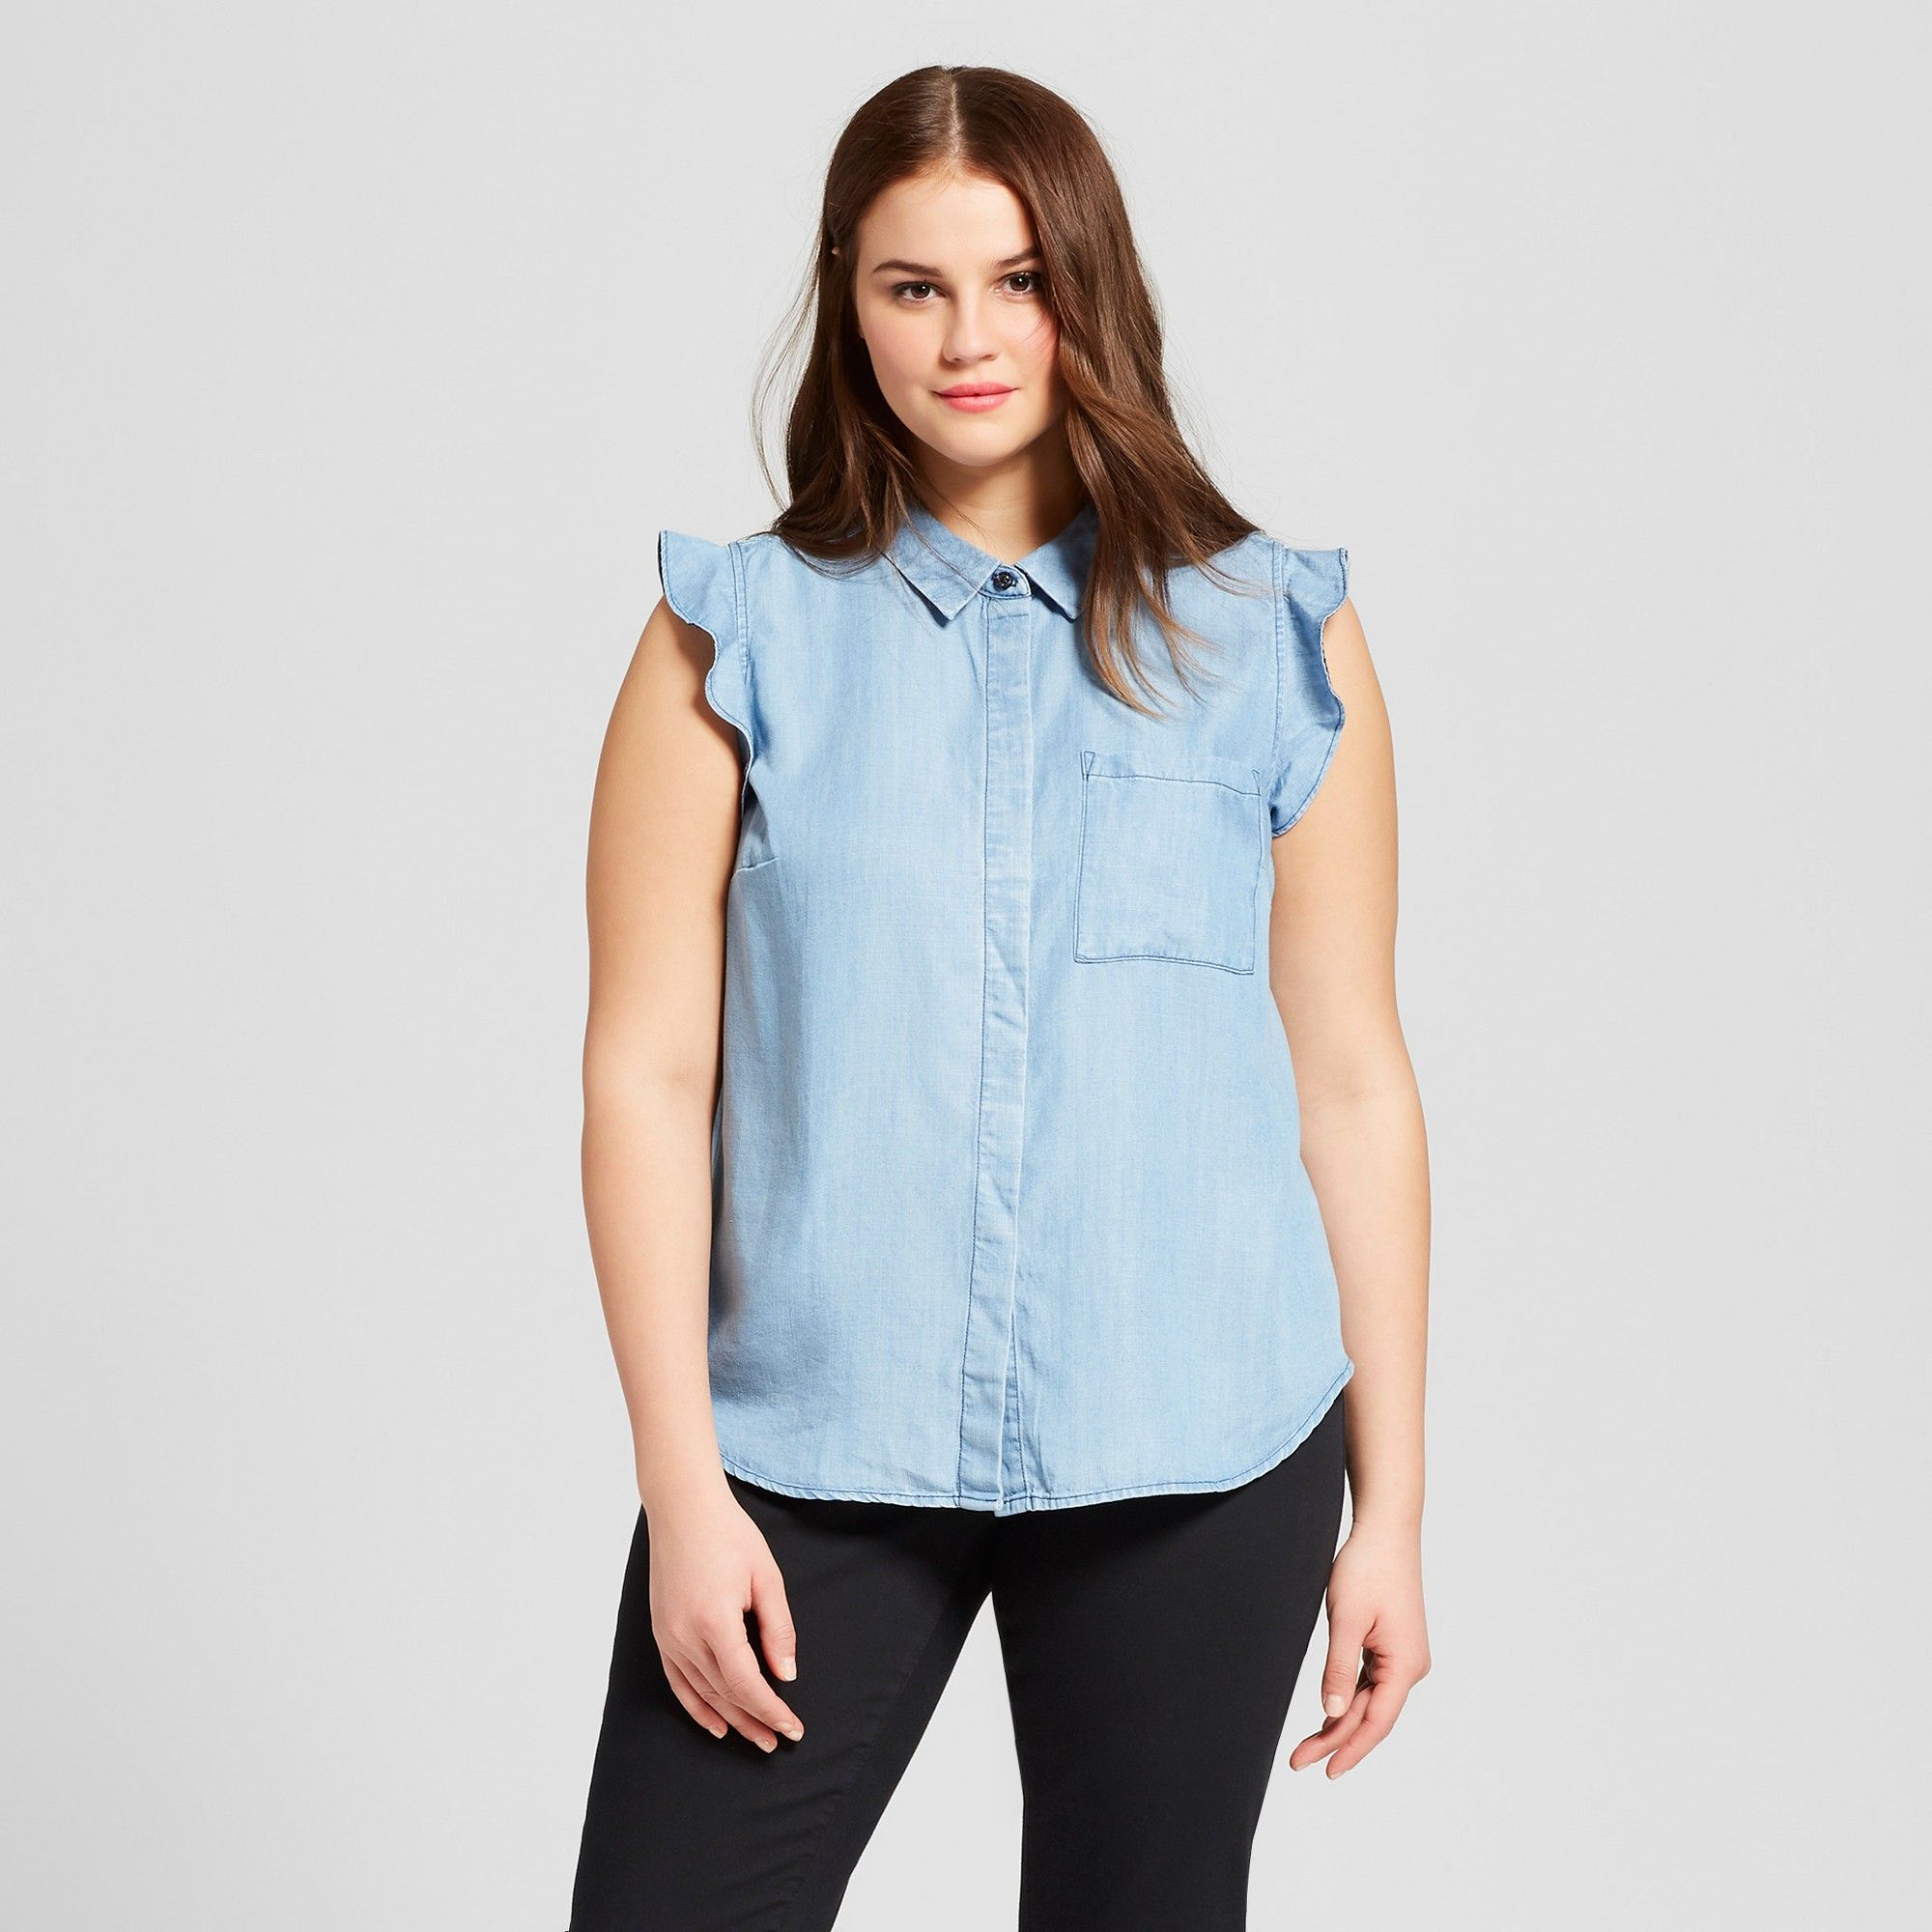 55a7a66a Women's Plus Size Sleeveless Ruffle Button-Up Blouse - Who What Wear  Chambray 1X